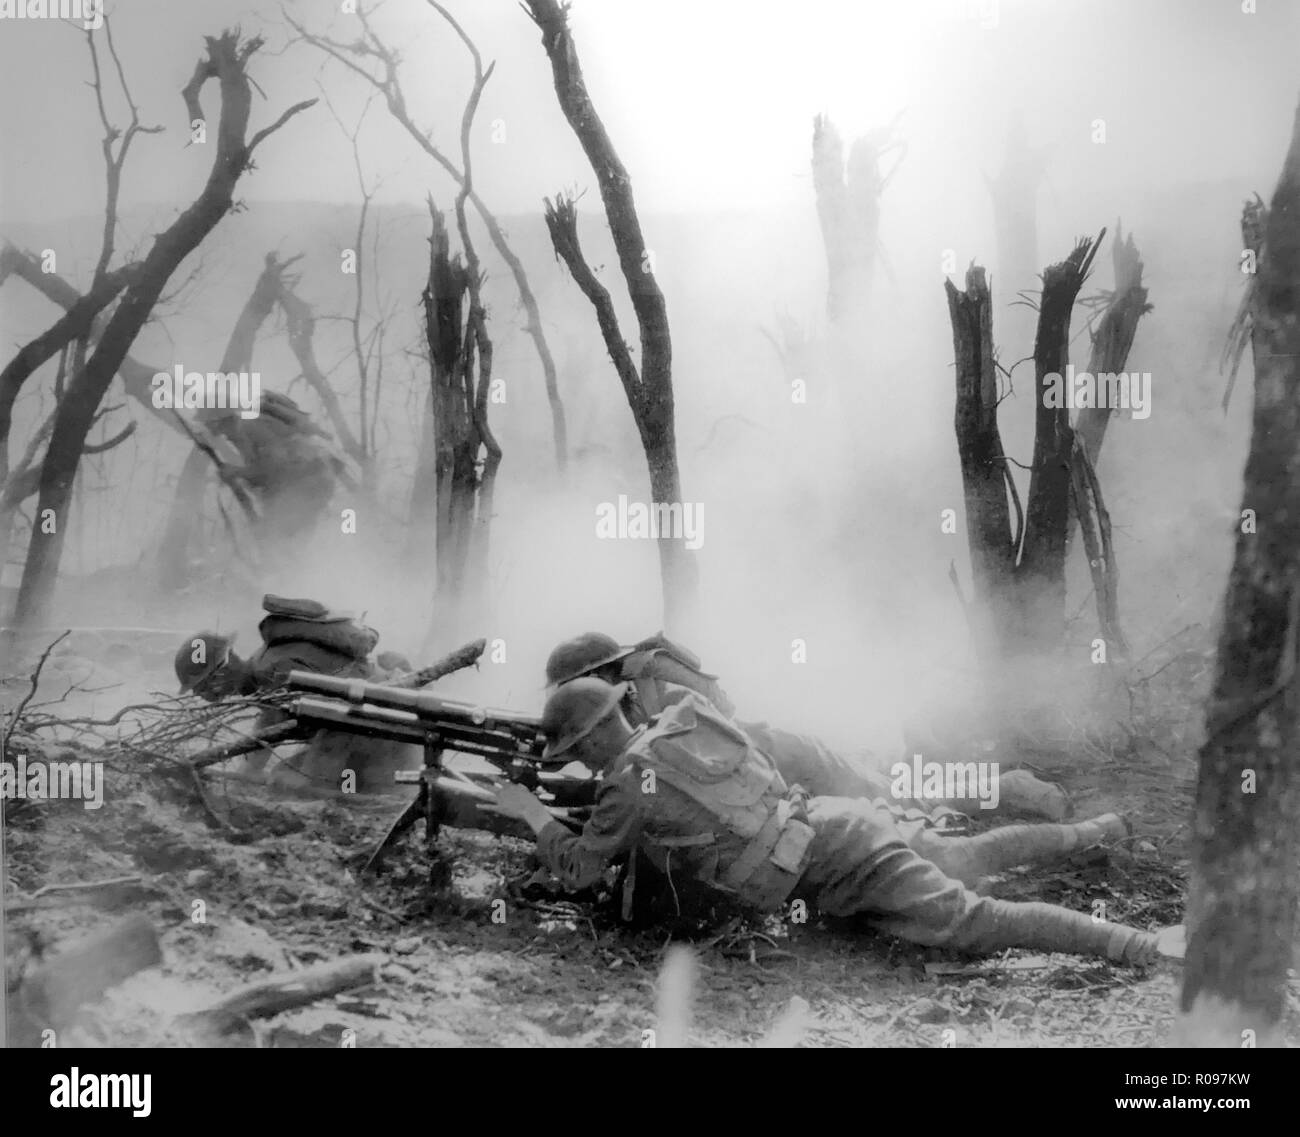 FIRST WORLD WAR Gun crew from the American Regimental Headquarters Company, 23rd Infantry, firing a tripod mounted M1916 37mm gun against German entrenched positions in Belleau Wood, France, 1918 - Stock Image